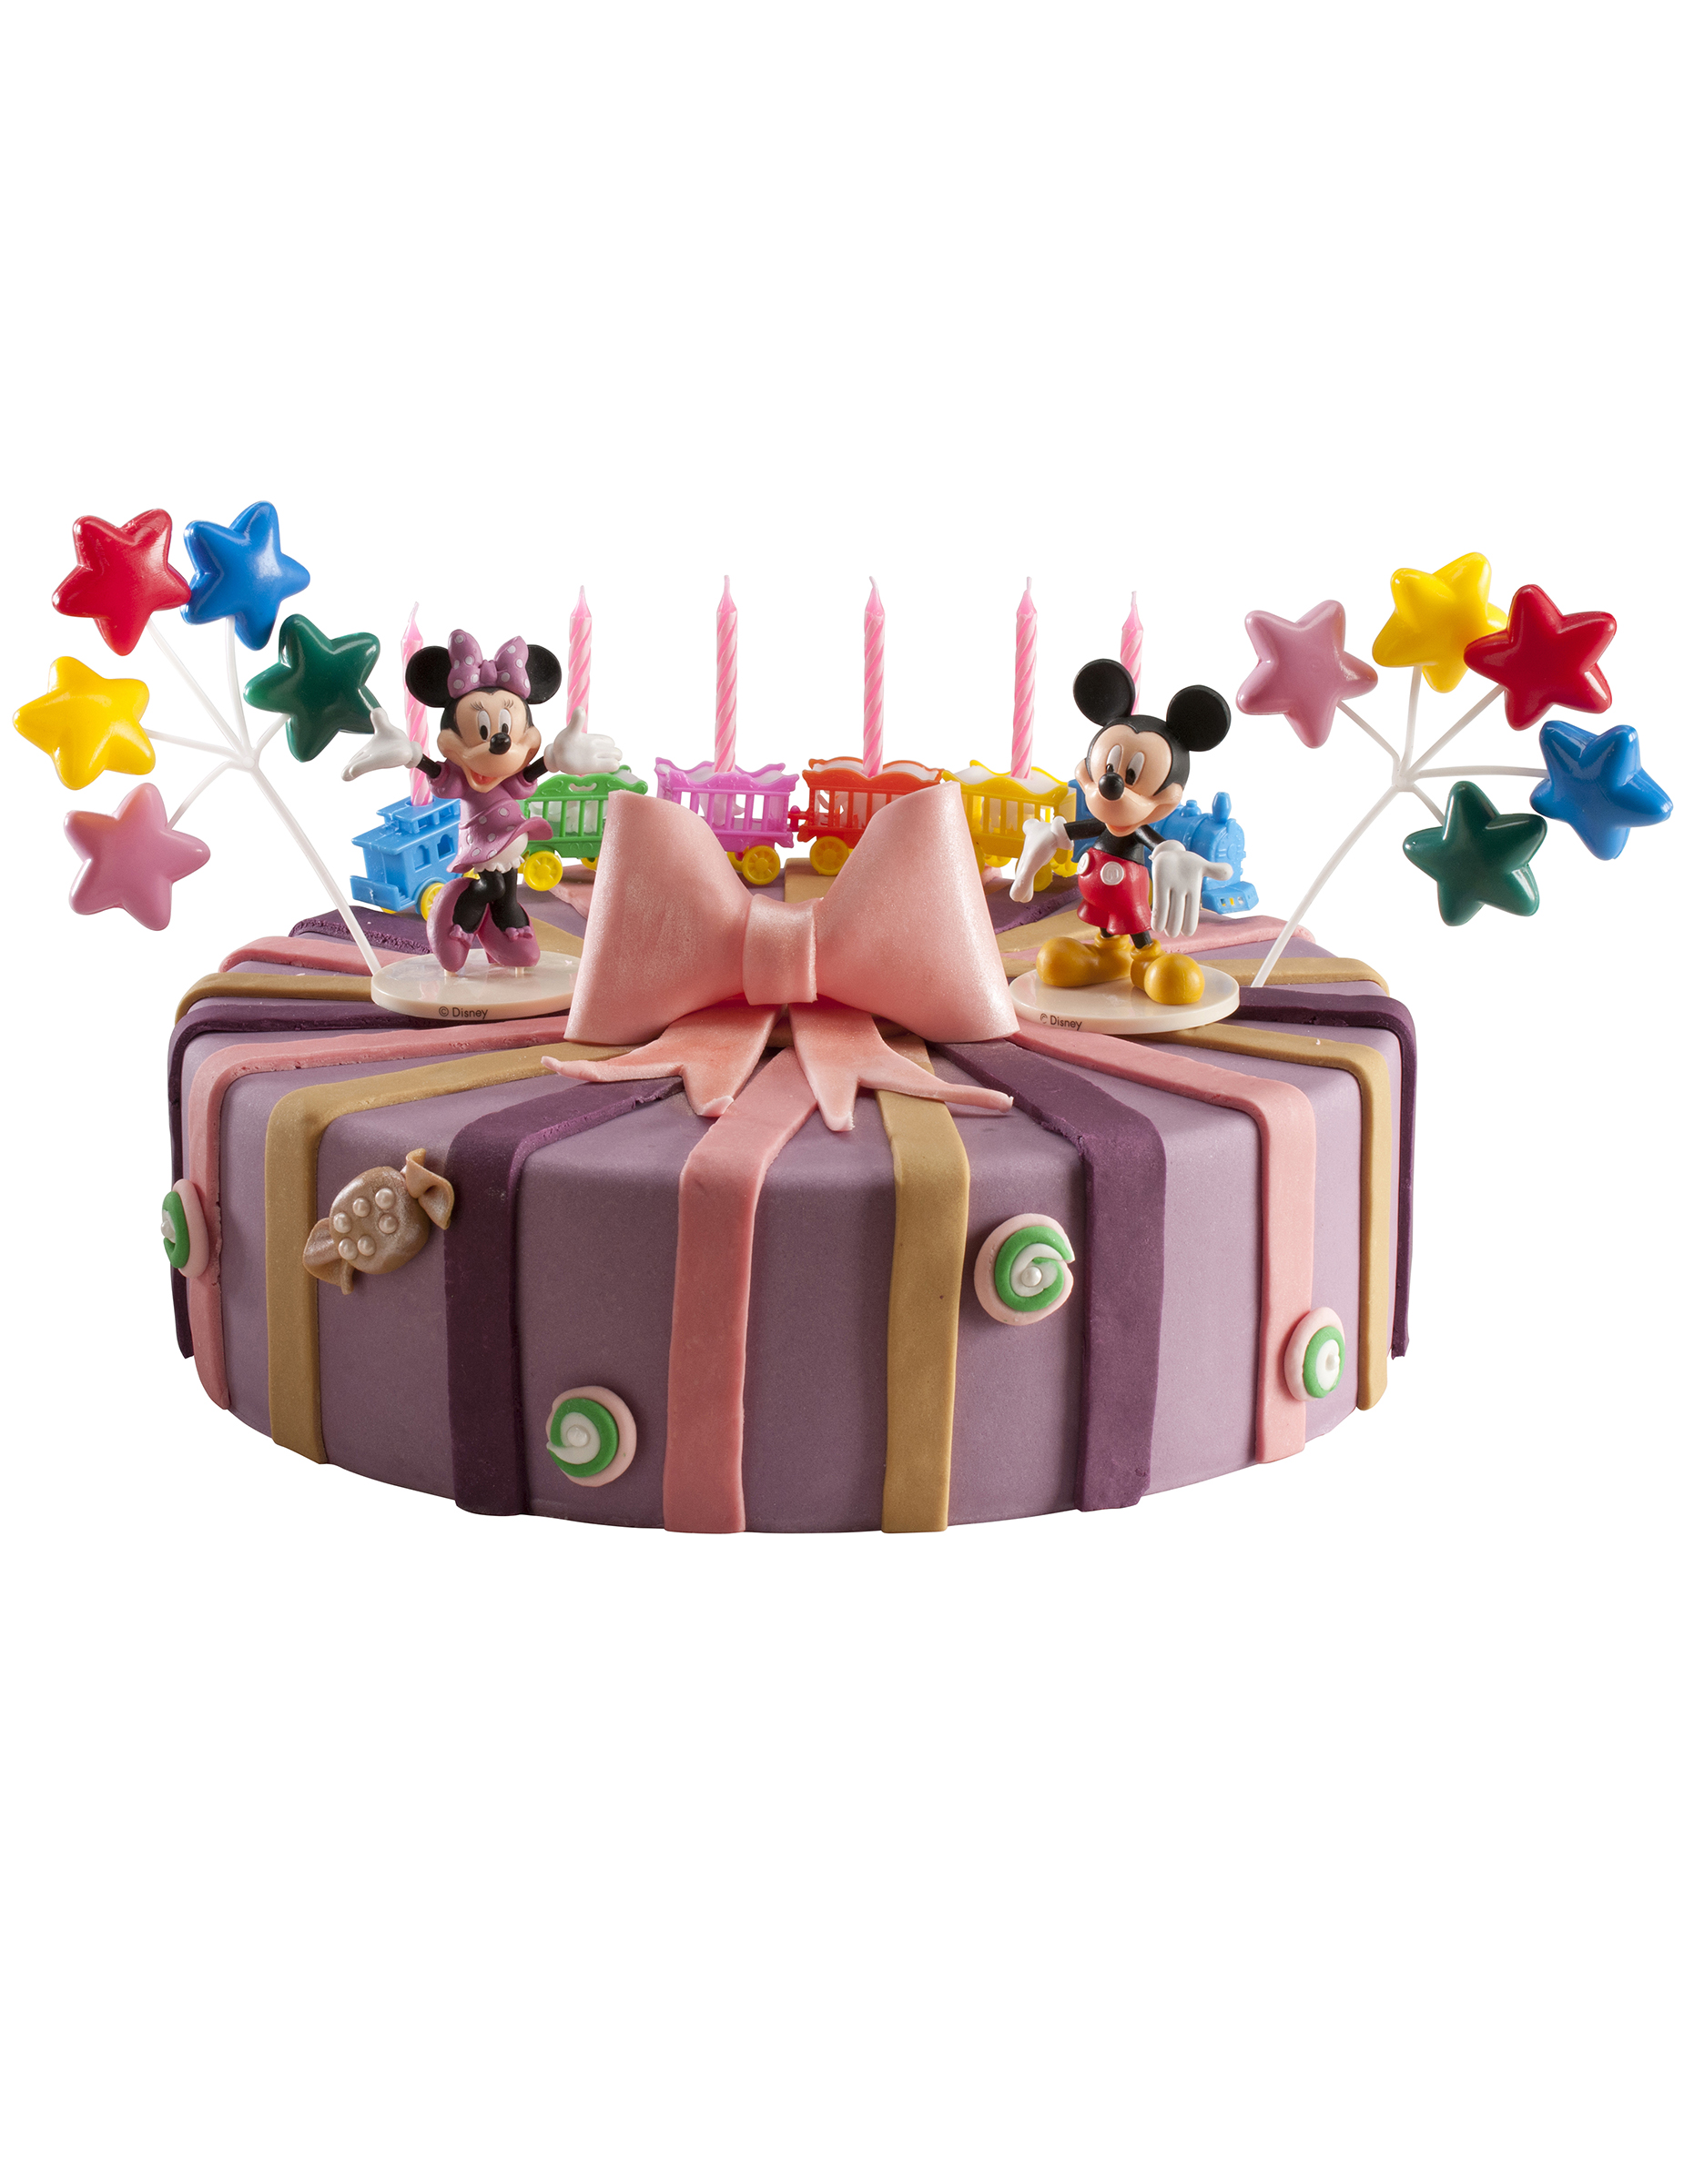 d 233 corations g 226 teau mickey minnie d 233 coration anniversaire et f 234 tes 224 th 232 me sur vegaoo